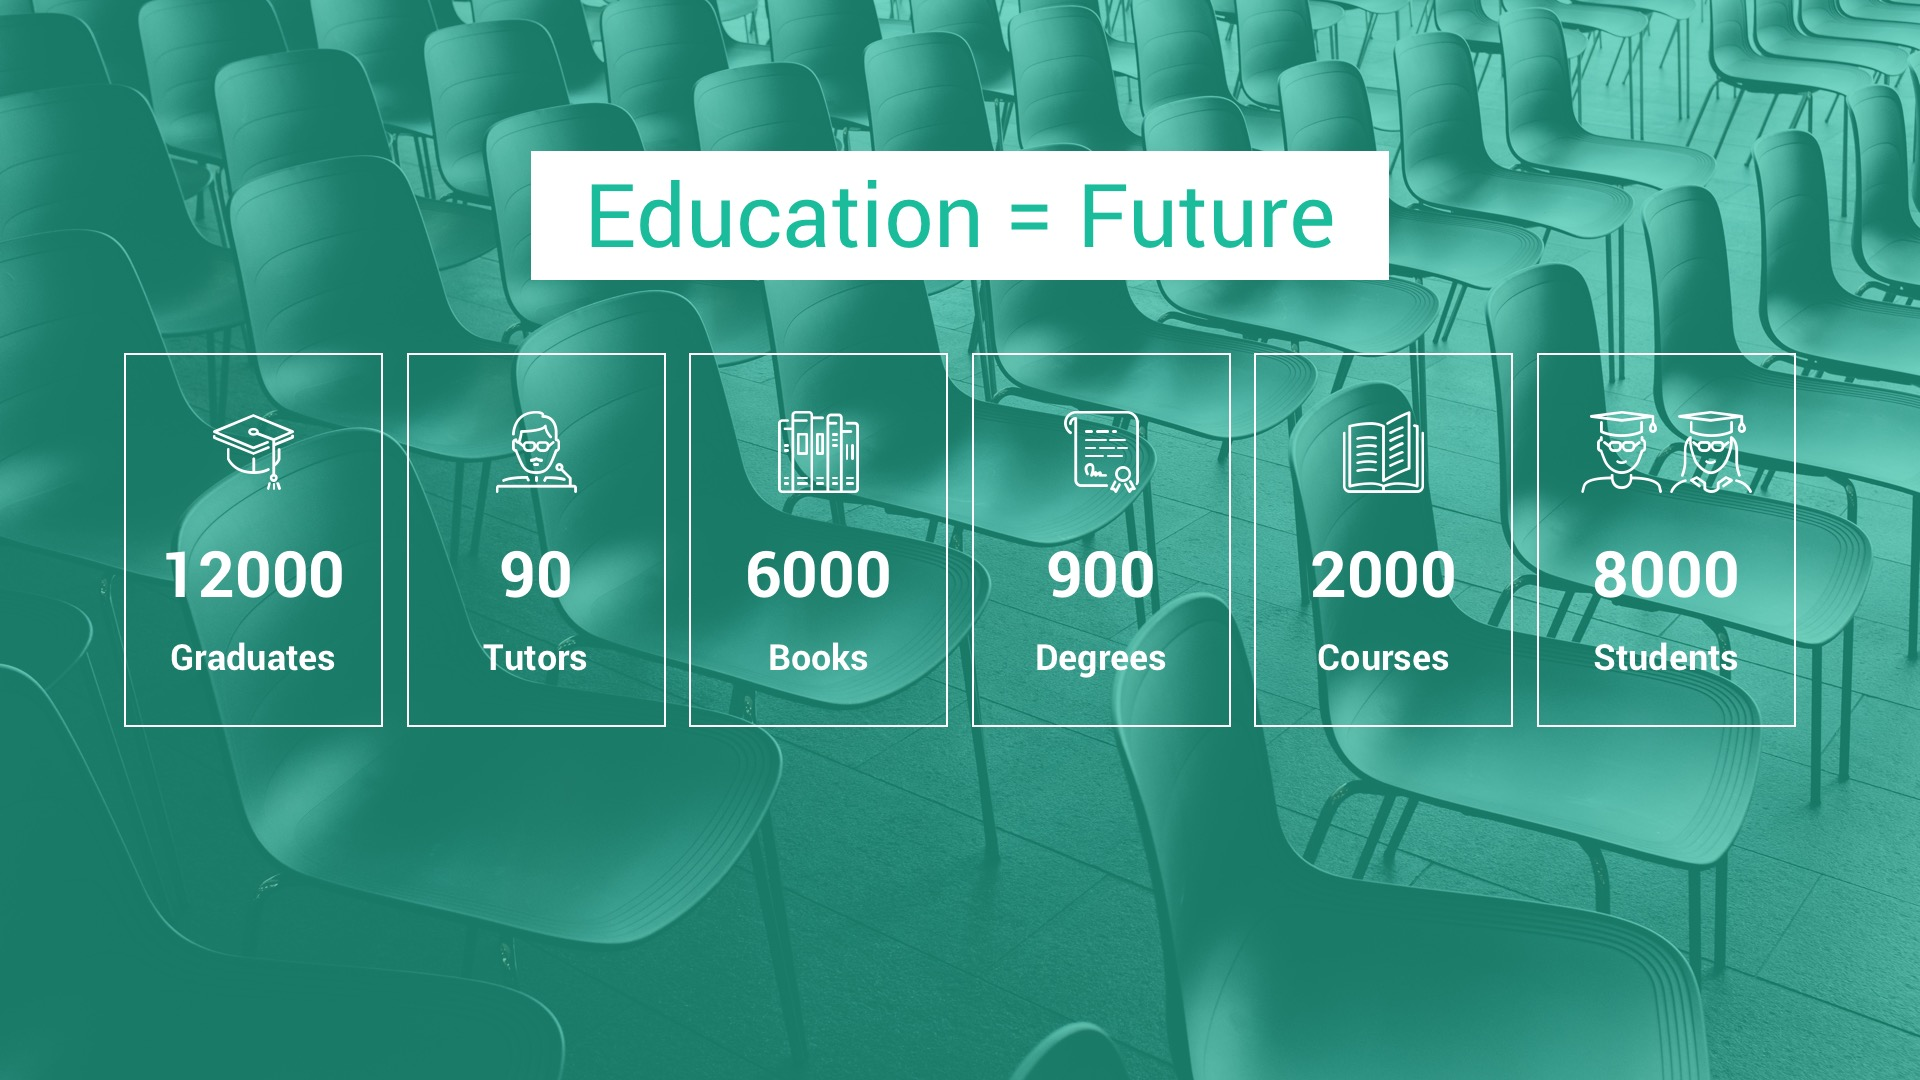 Education And Learning Powerpoint Presentation Template By Spriteit